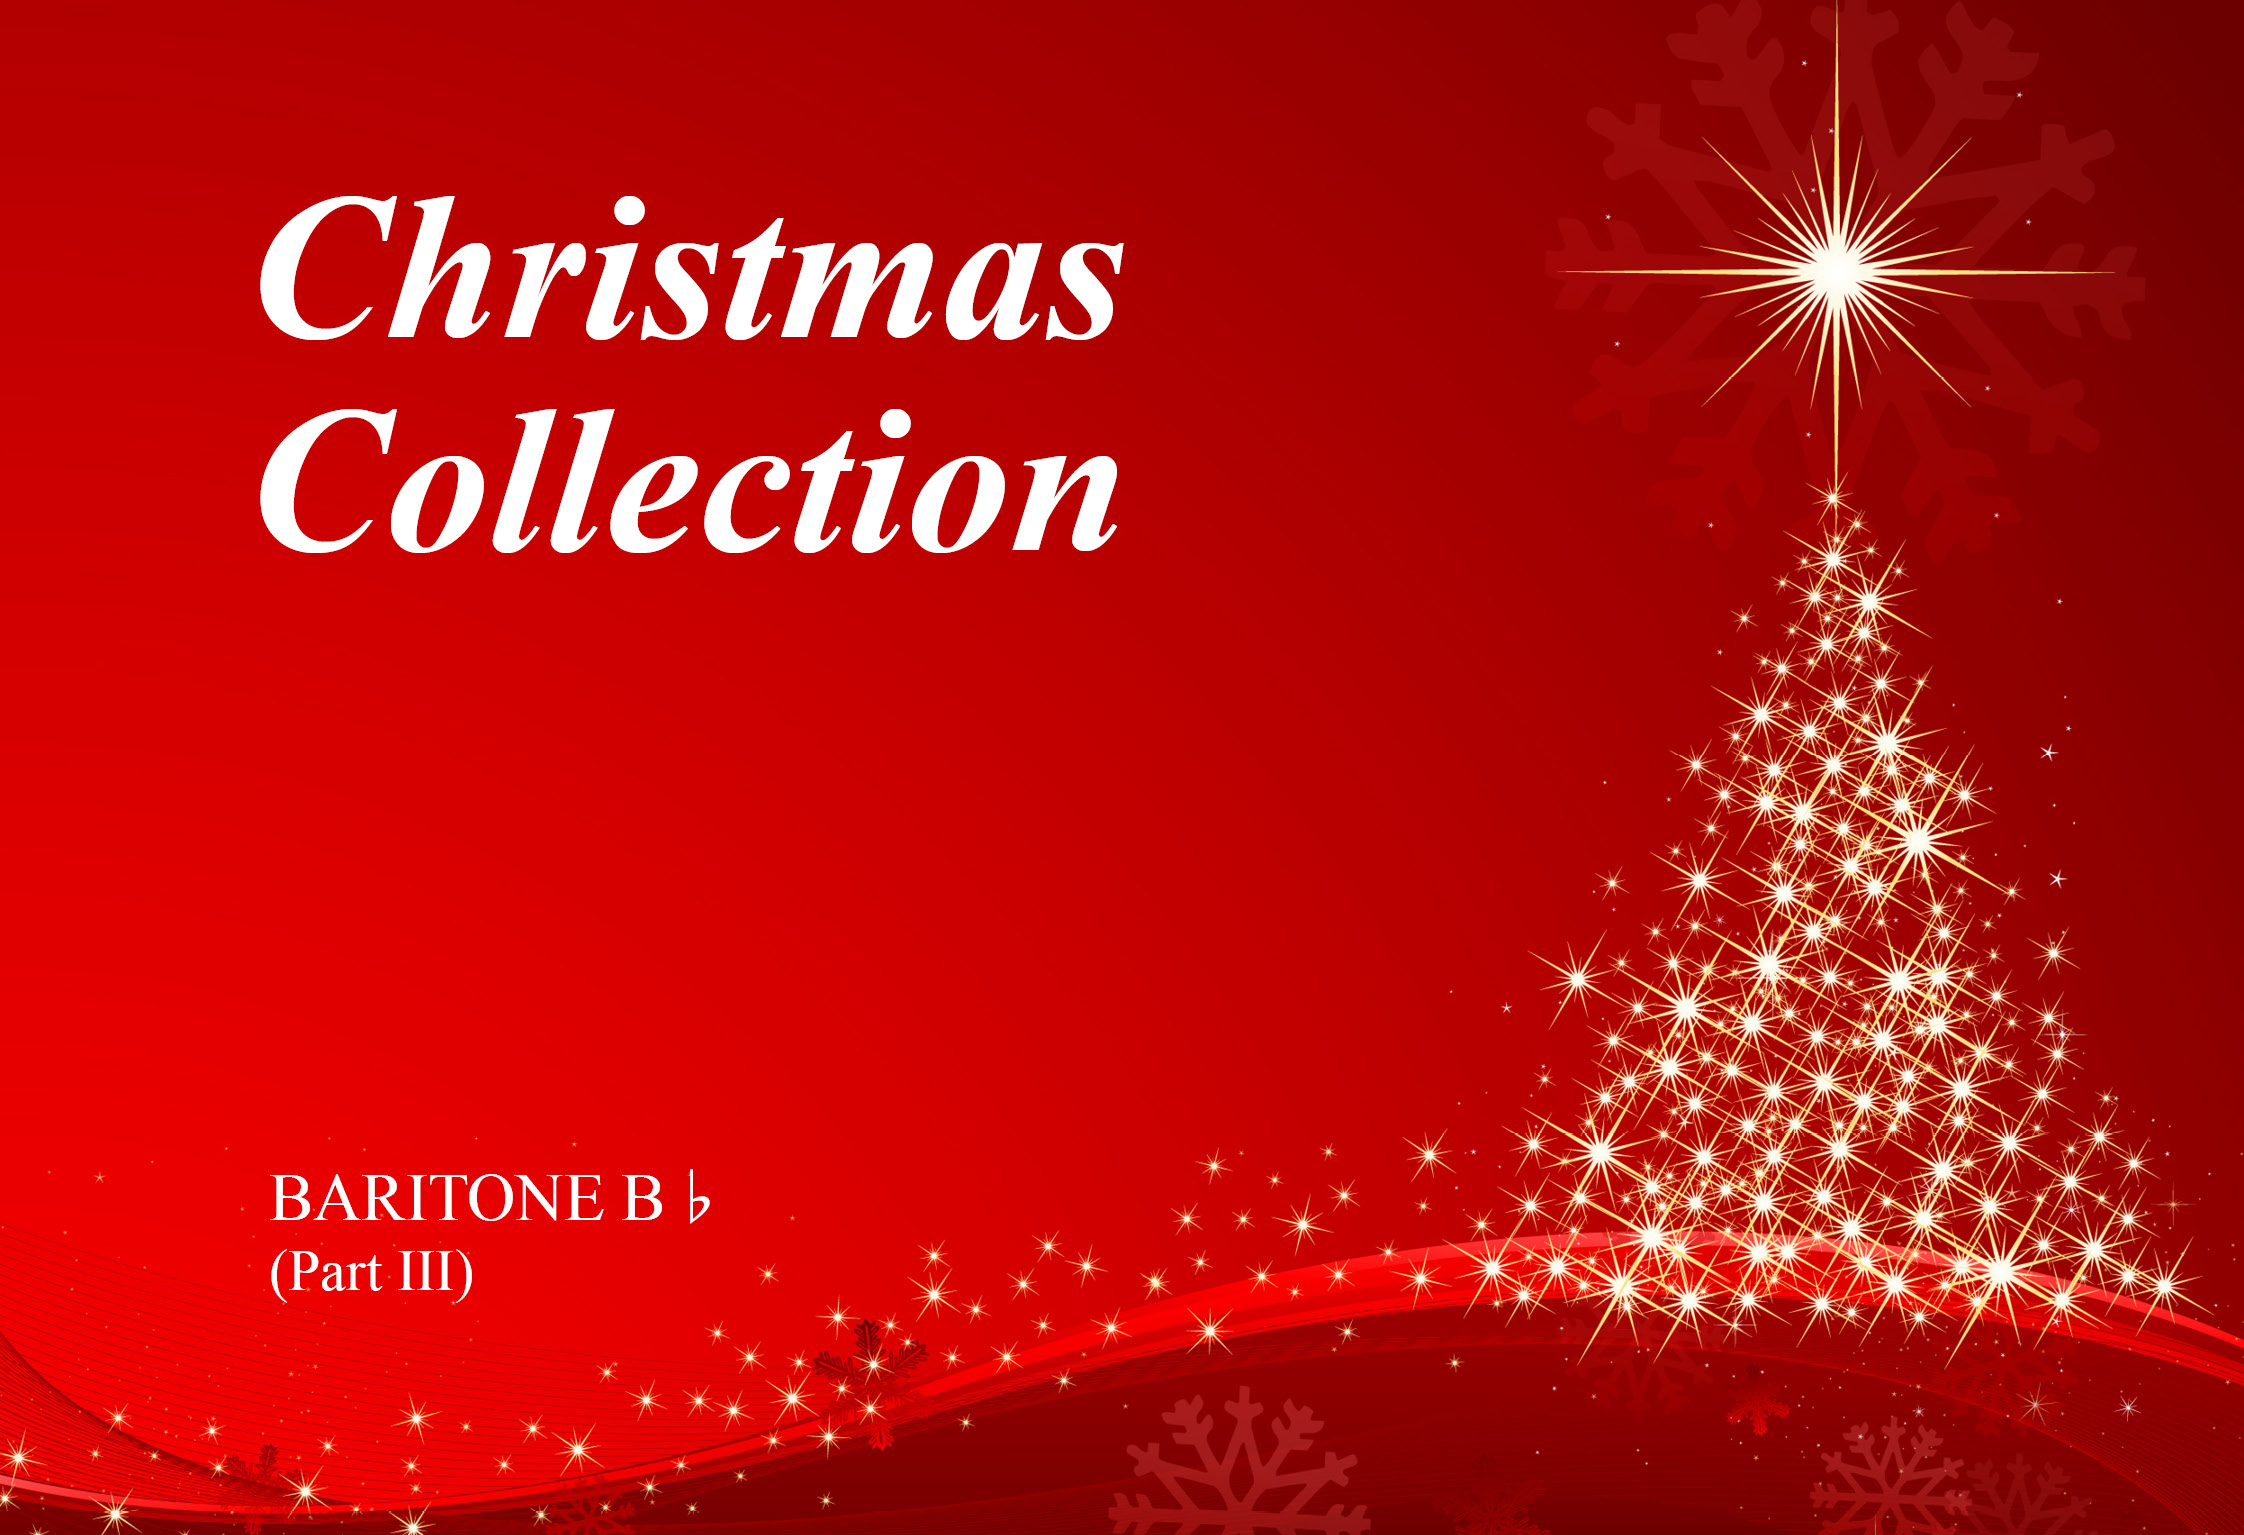 Christmas Collection - Baritone Bb Part III - Large Print A4